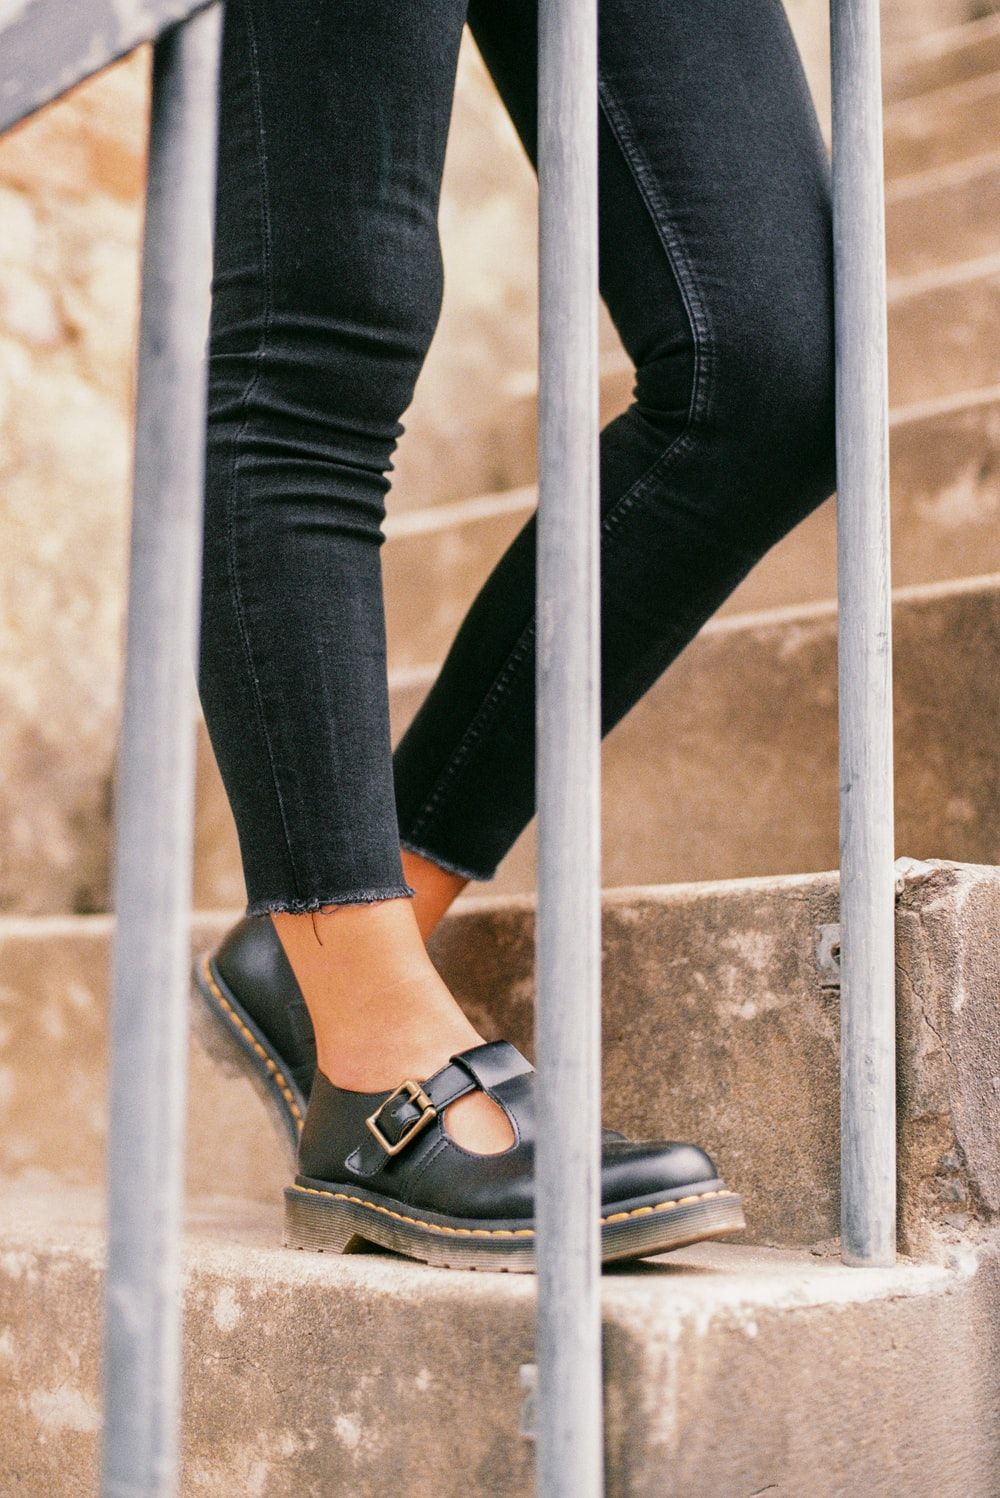 person wearing blue denim jeans and black leather peep toe sandals